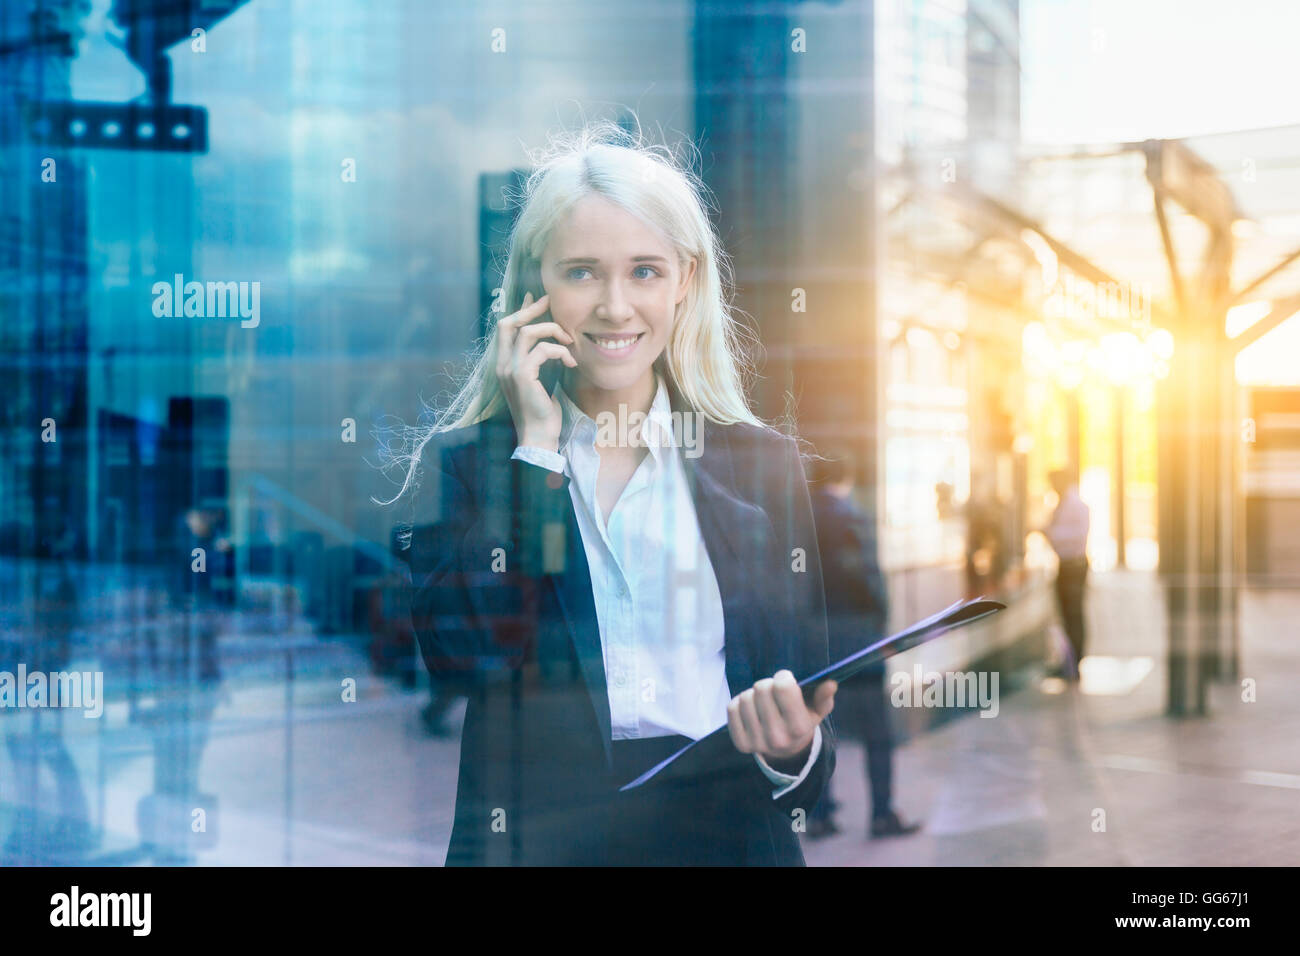 Businesswoman using a mobile phone - Stock Image